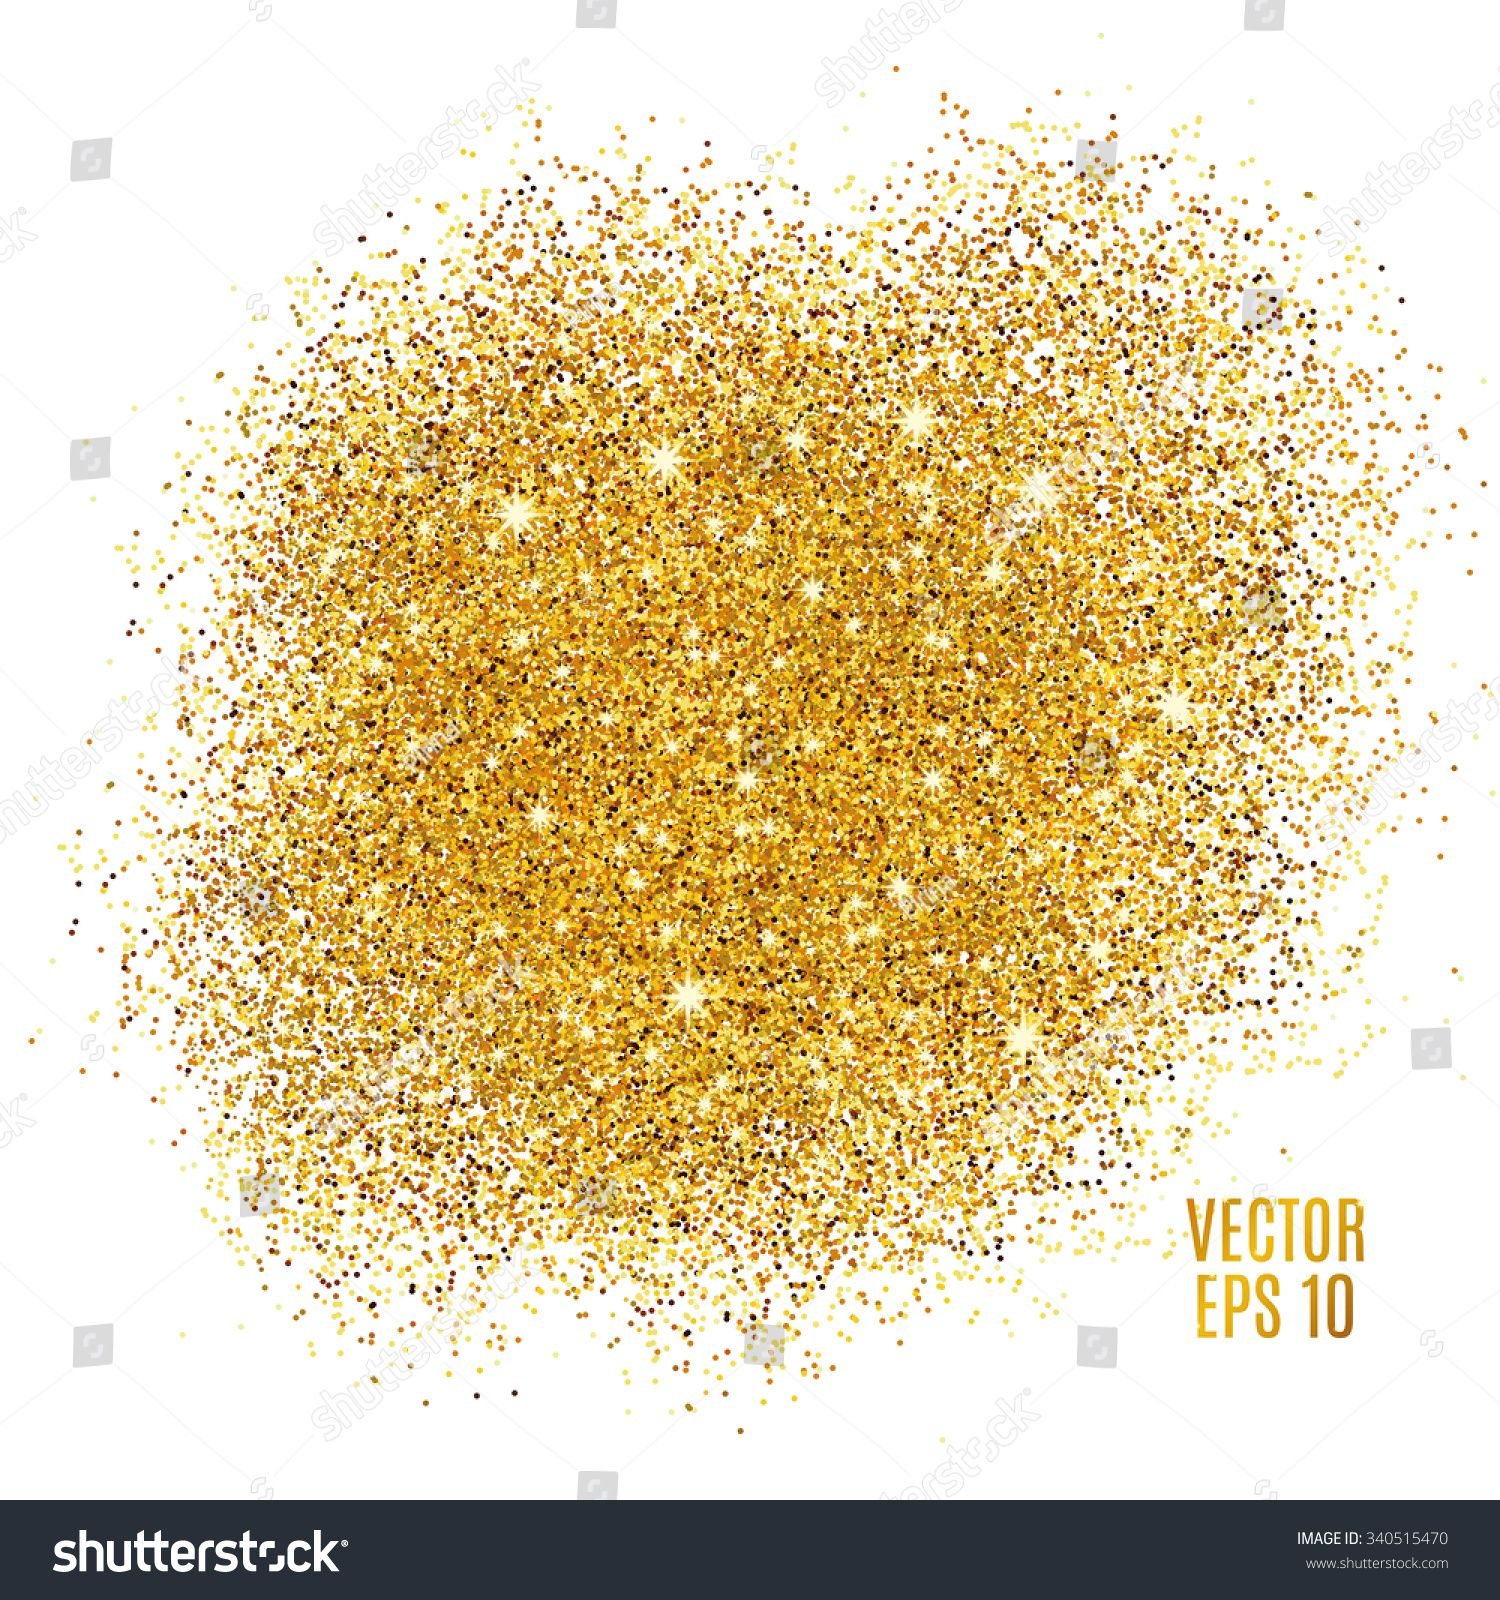 Gold sparkles on white background. Gold glitter background. Golden backdrop for card, vip, exclusive, certificate, gift, luxury, privilege, voucher, store, present, shopping. #Sponsored , #SPONSORED, #backdrop#Golden#vip#card #goldglitterbackground